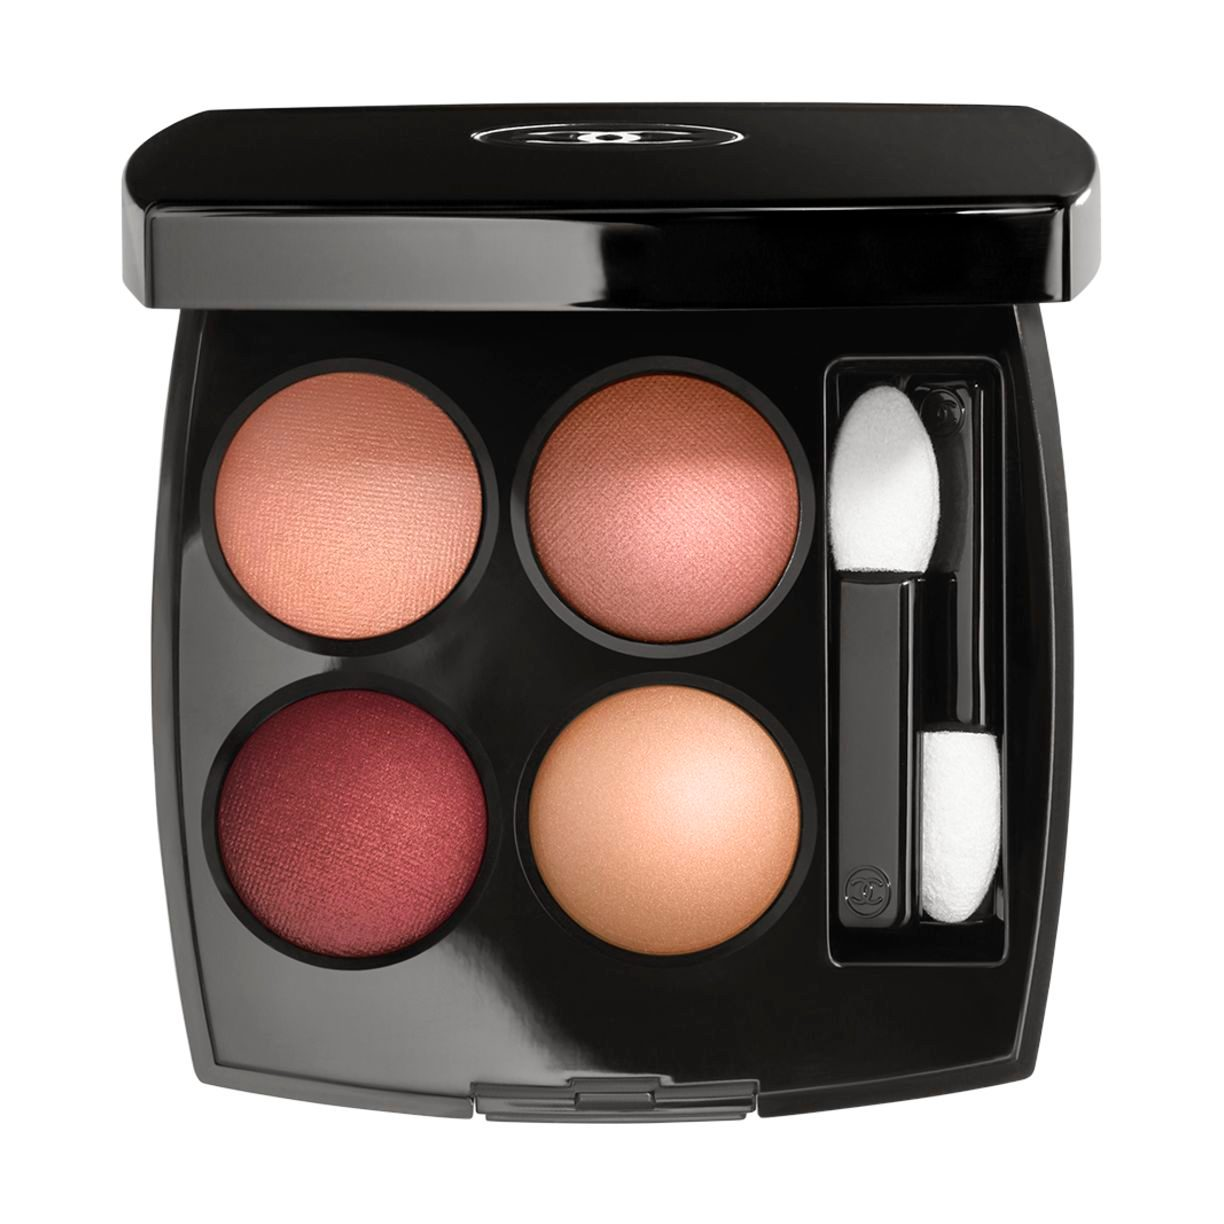 LES 4 OMBRES MULTI-EFFECT QUADRA EYESHADOW 344 - LUEUR ARDENTE